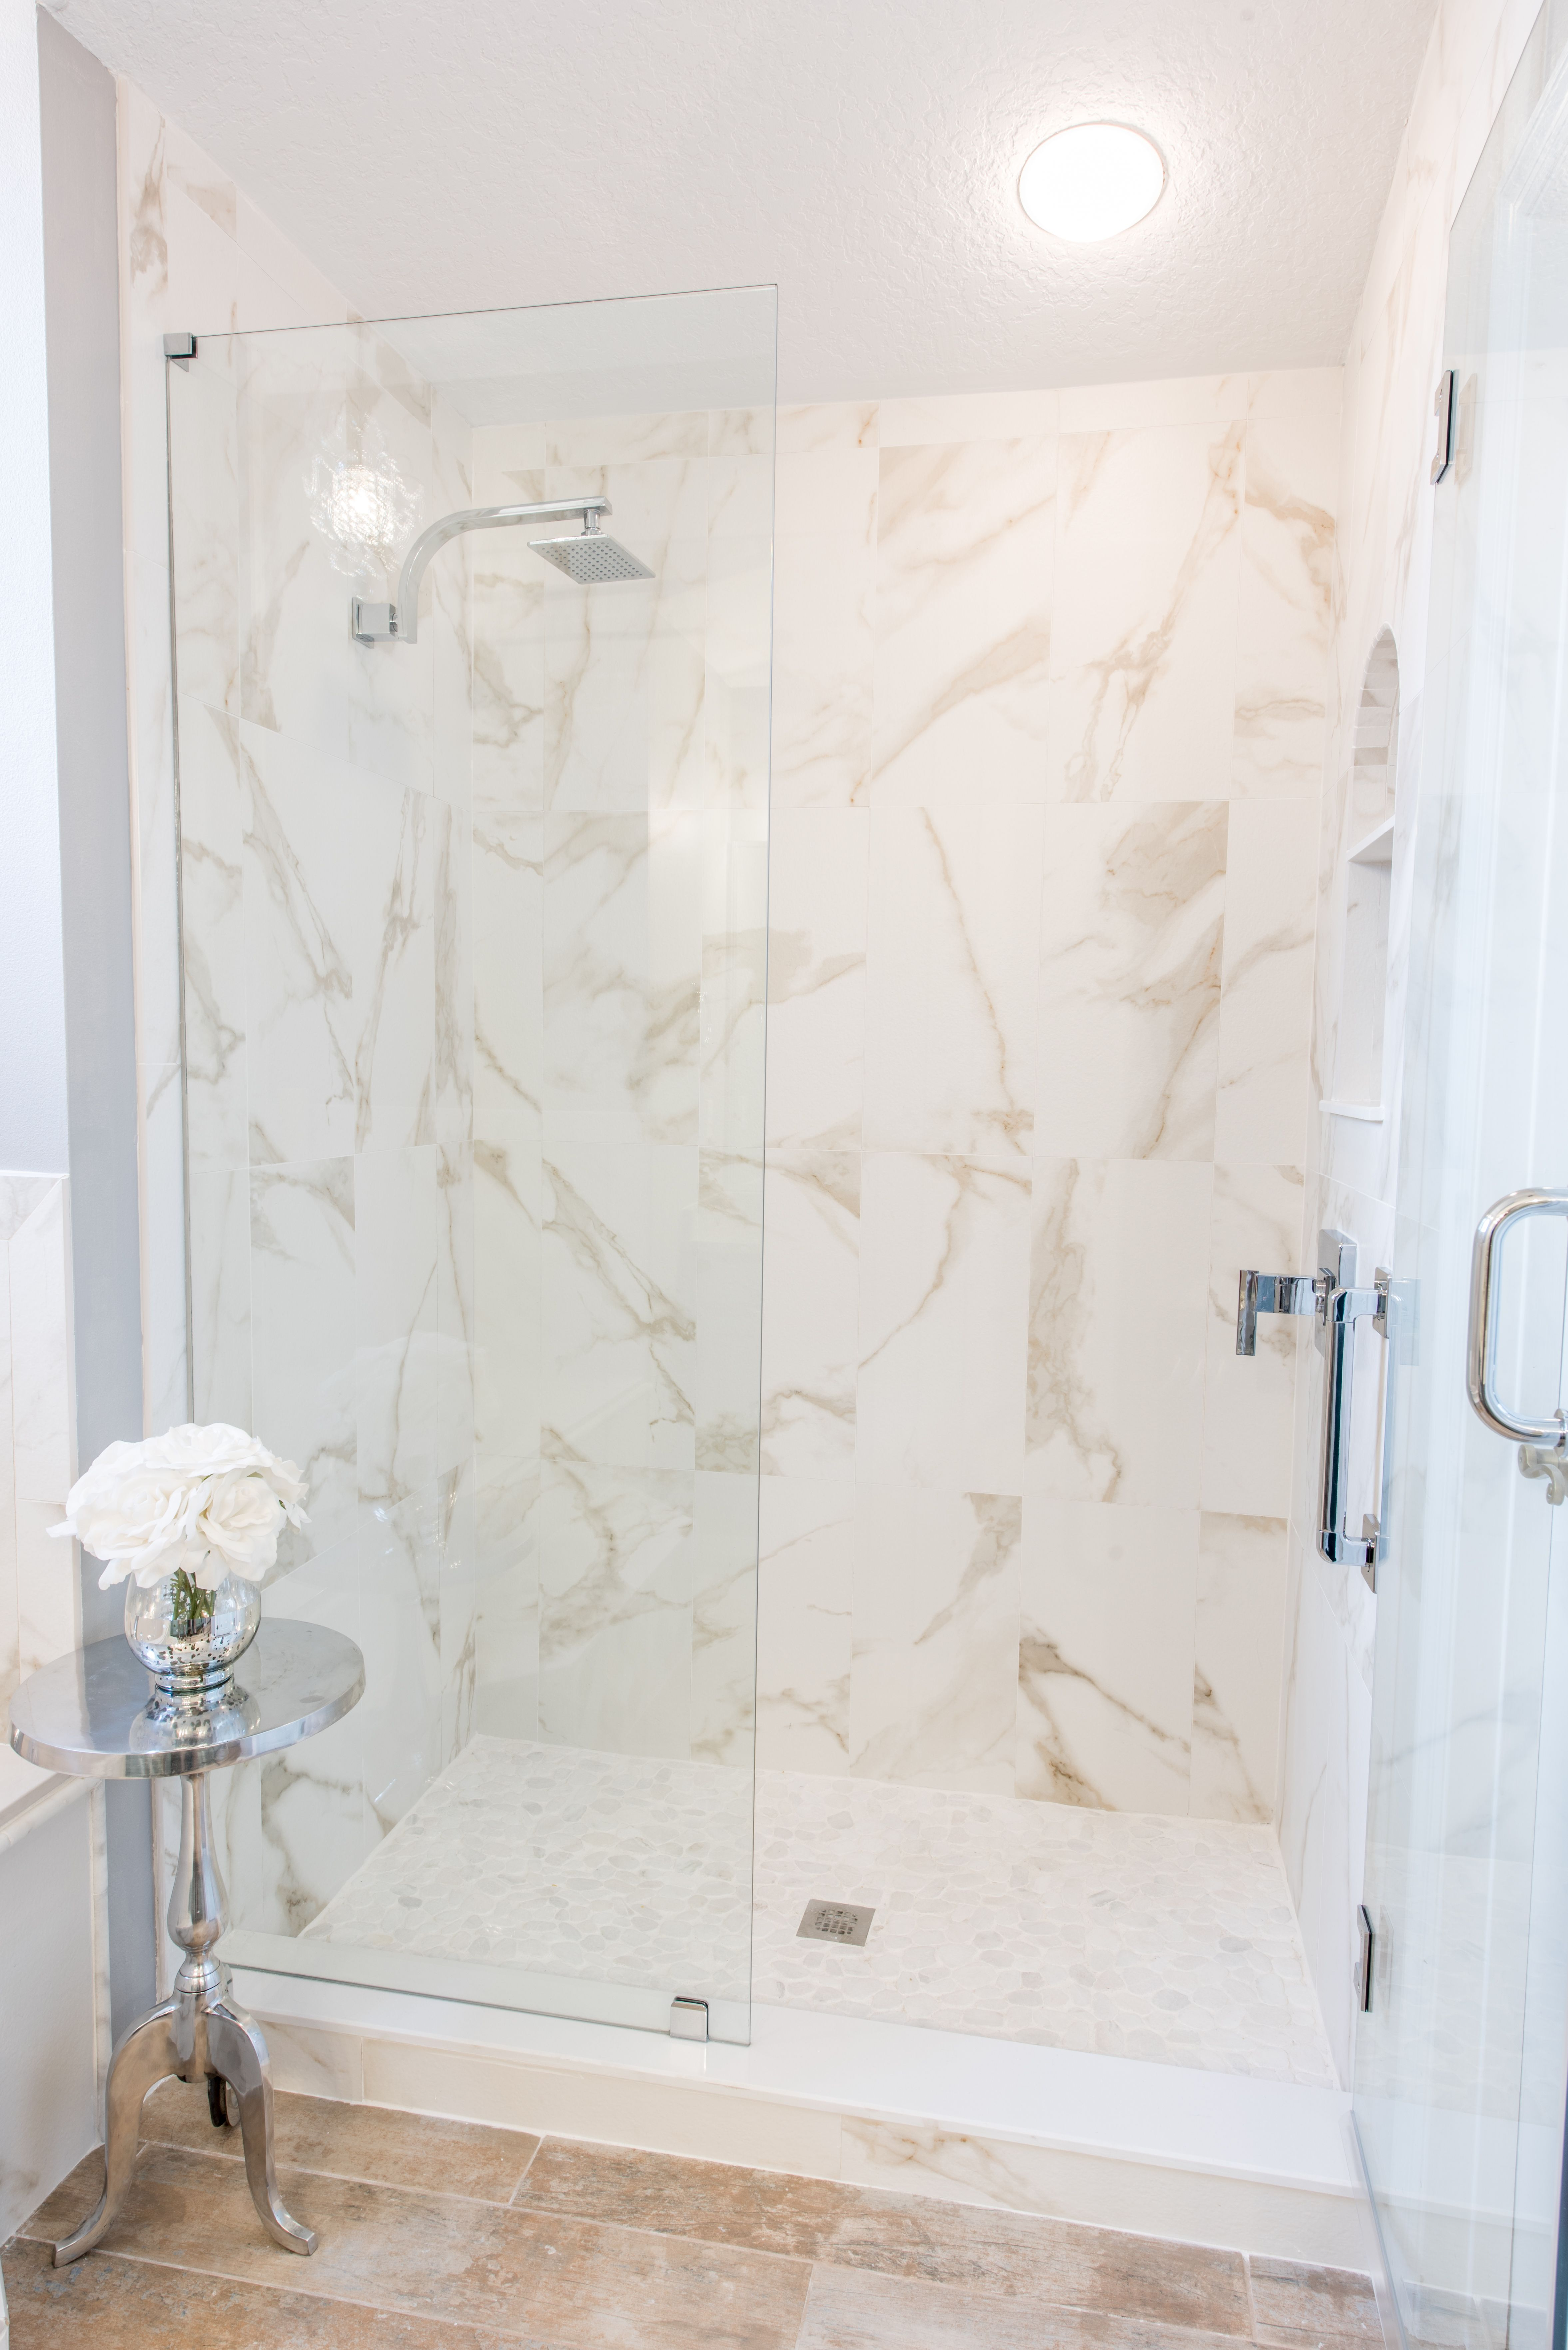 Design By Brittany Hutt Photo Flsportsguy Shower Wall Tile